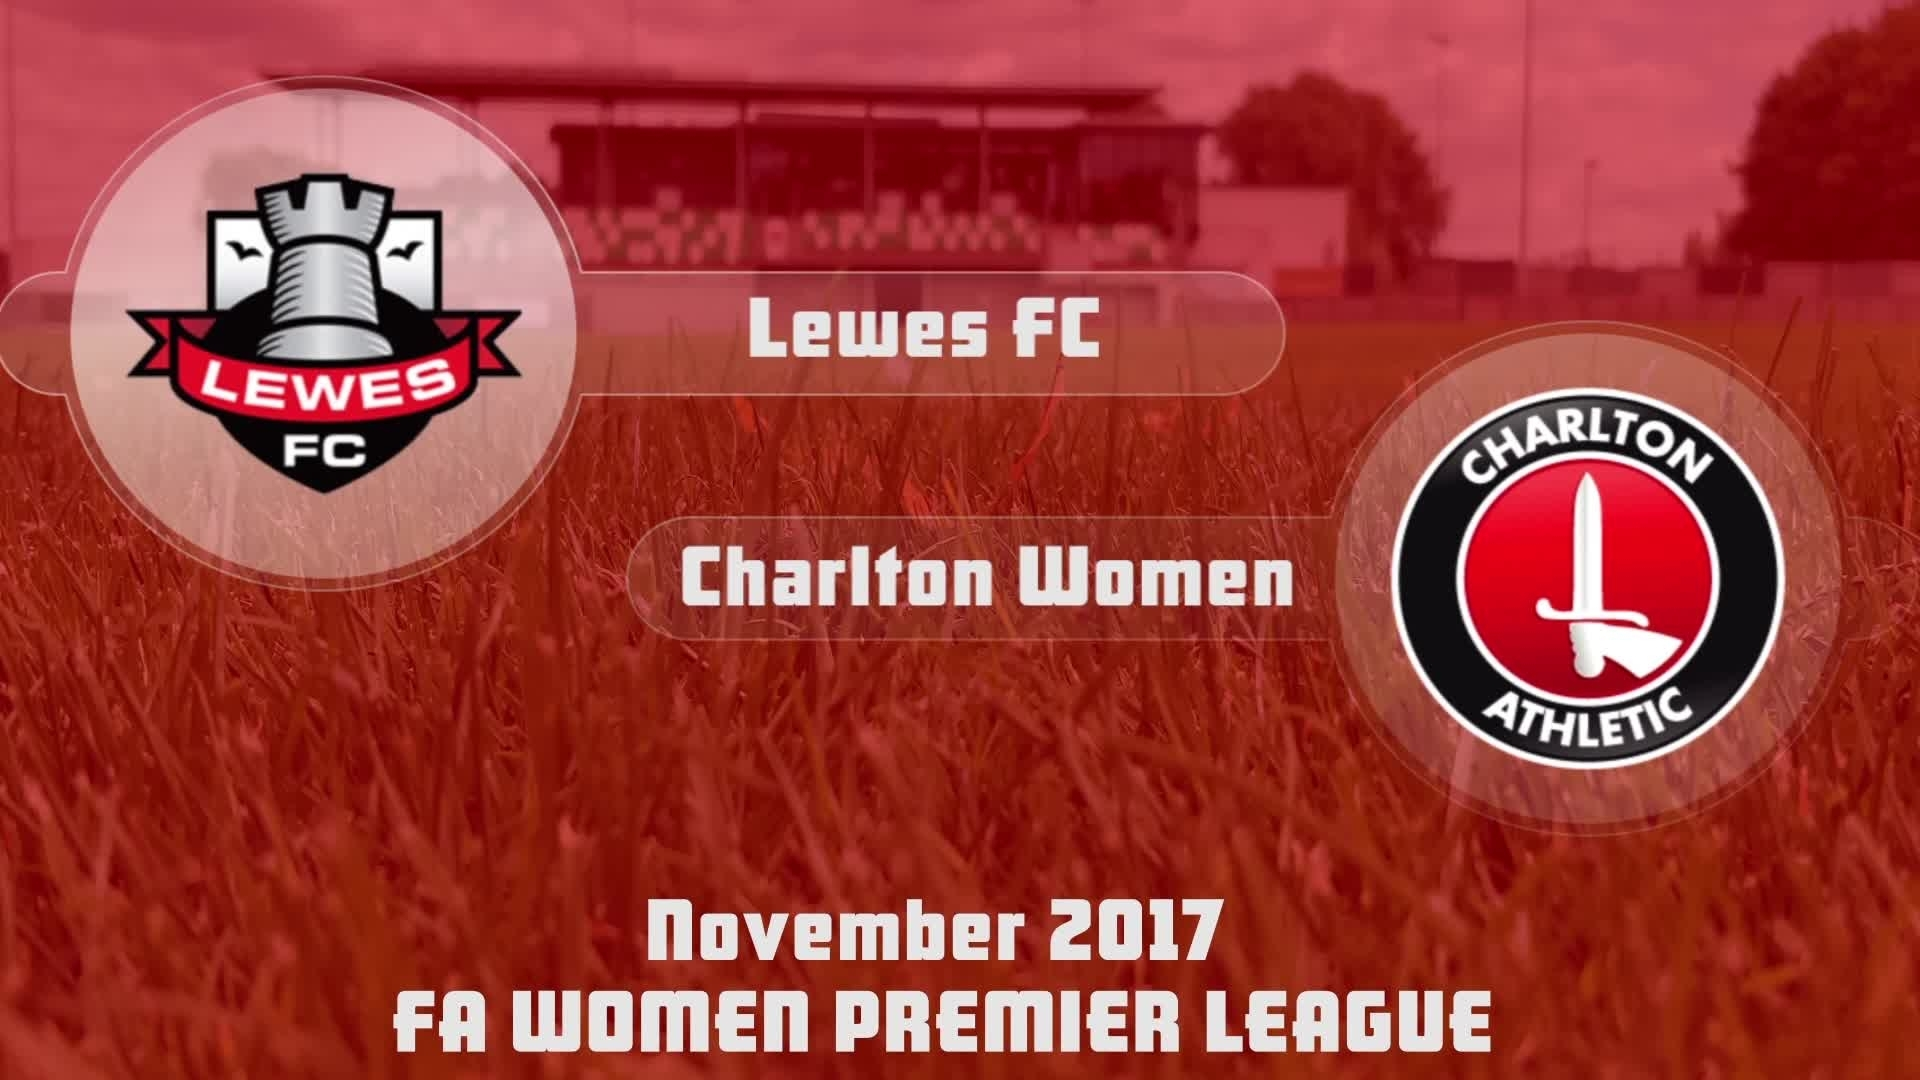 WOMEN'S HIGHLIGHTS | Lewes 1 Charlton 2 (Nov 2017)